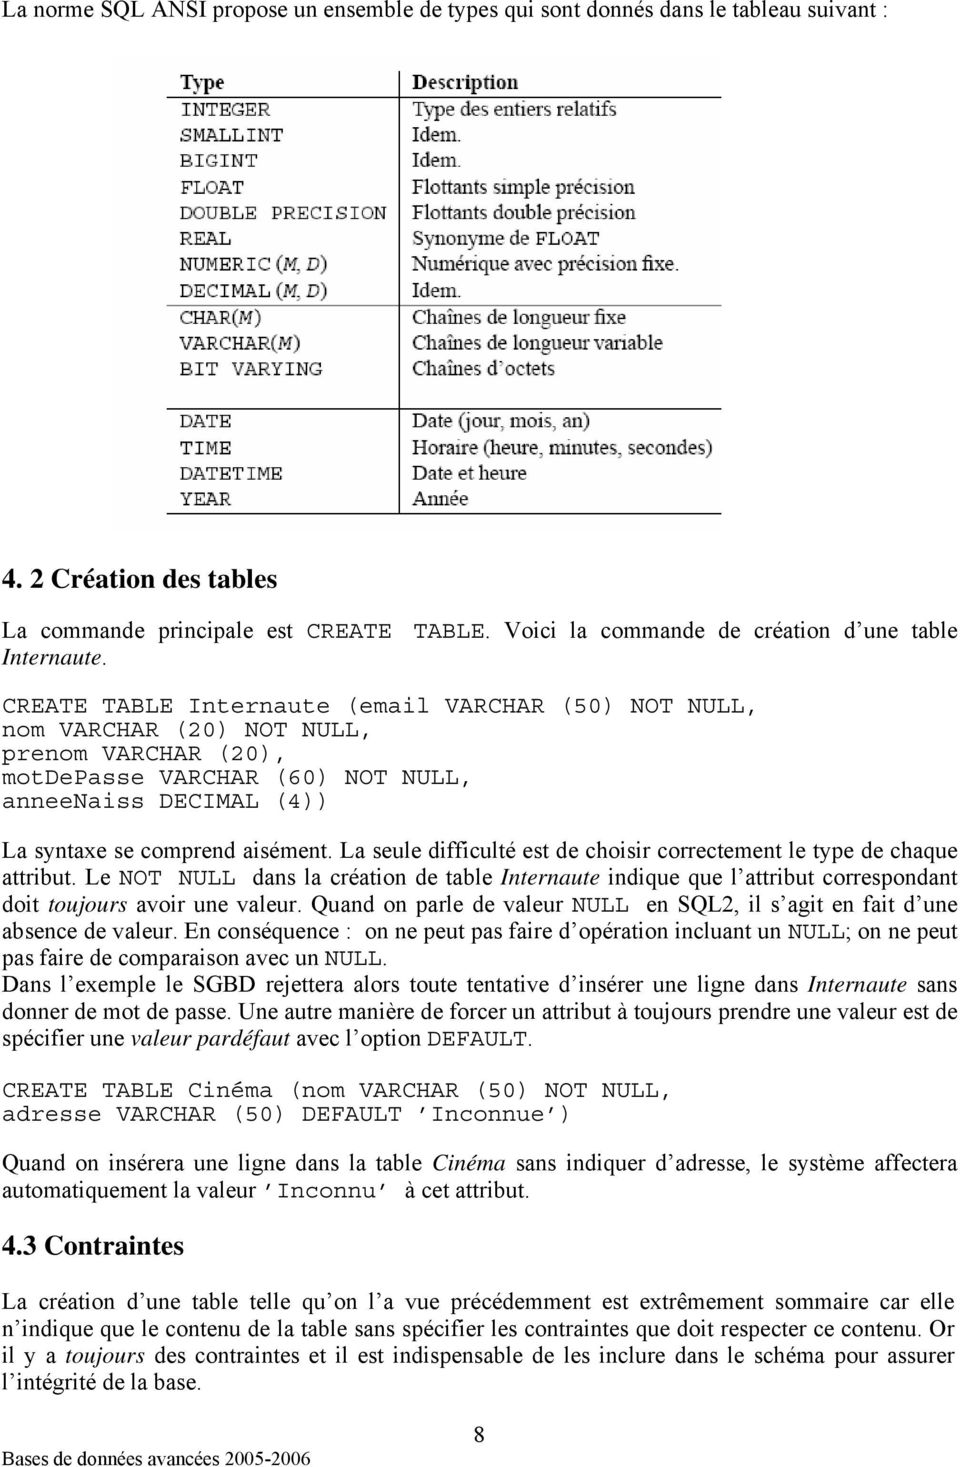 CREATE TABLE Internaute (email VARCHAR (50) NOT NULL, nom VARCHAR (20) NOT NULL, prenom VARCHAR (20), motdepasse VARCHAR (60) NOT NULL, anneenaiss DECIMAL (4)) La syntaxe se comprend aisément.